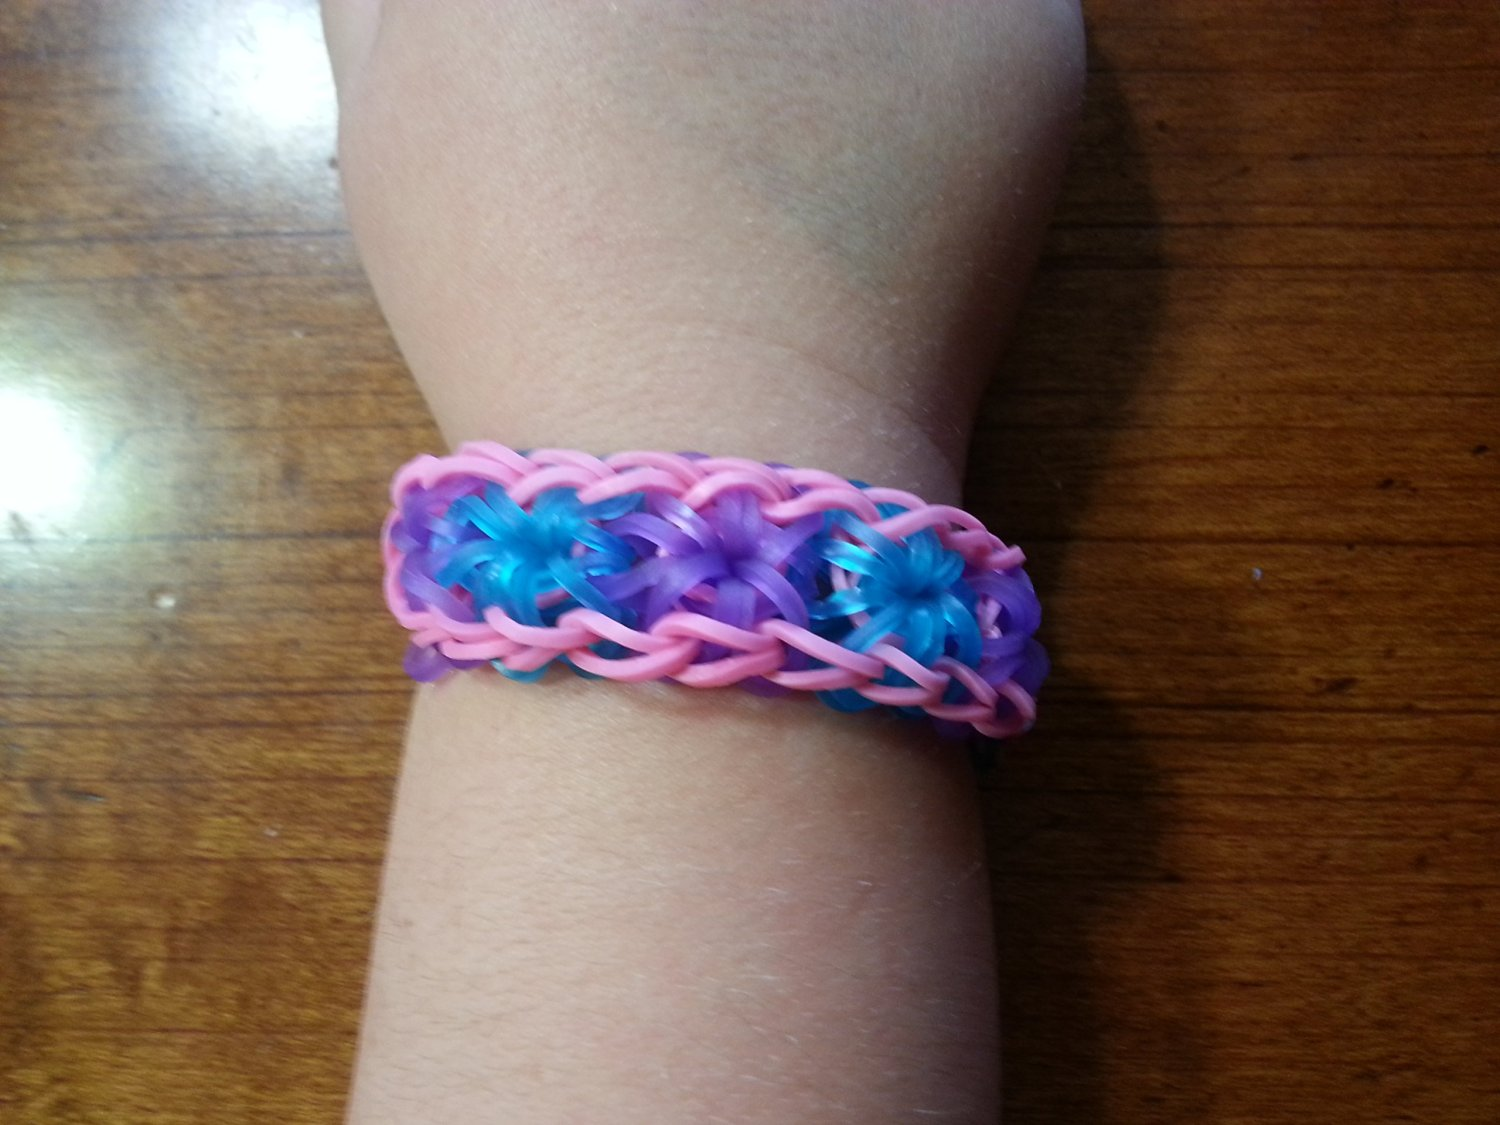 buy rainbow loom mermaid starburst bracelet pink with neon blue